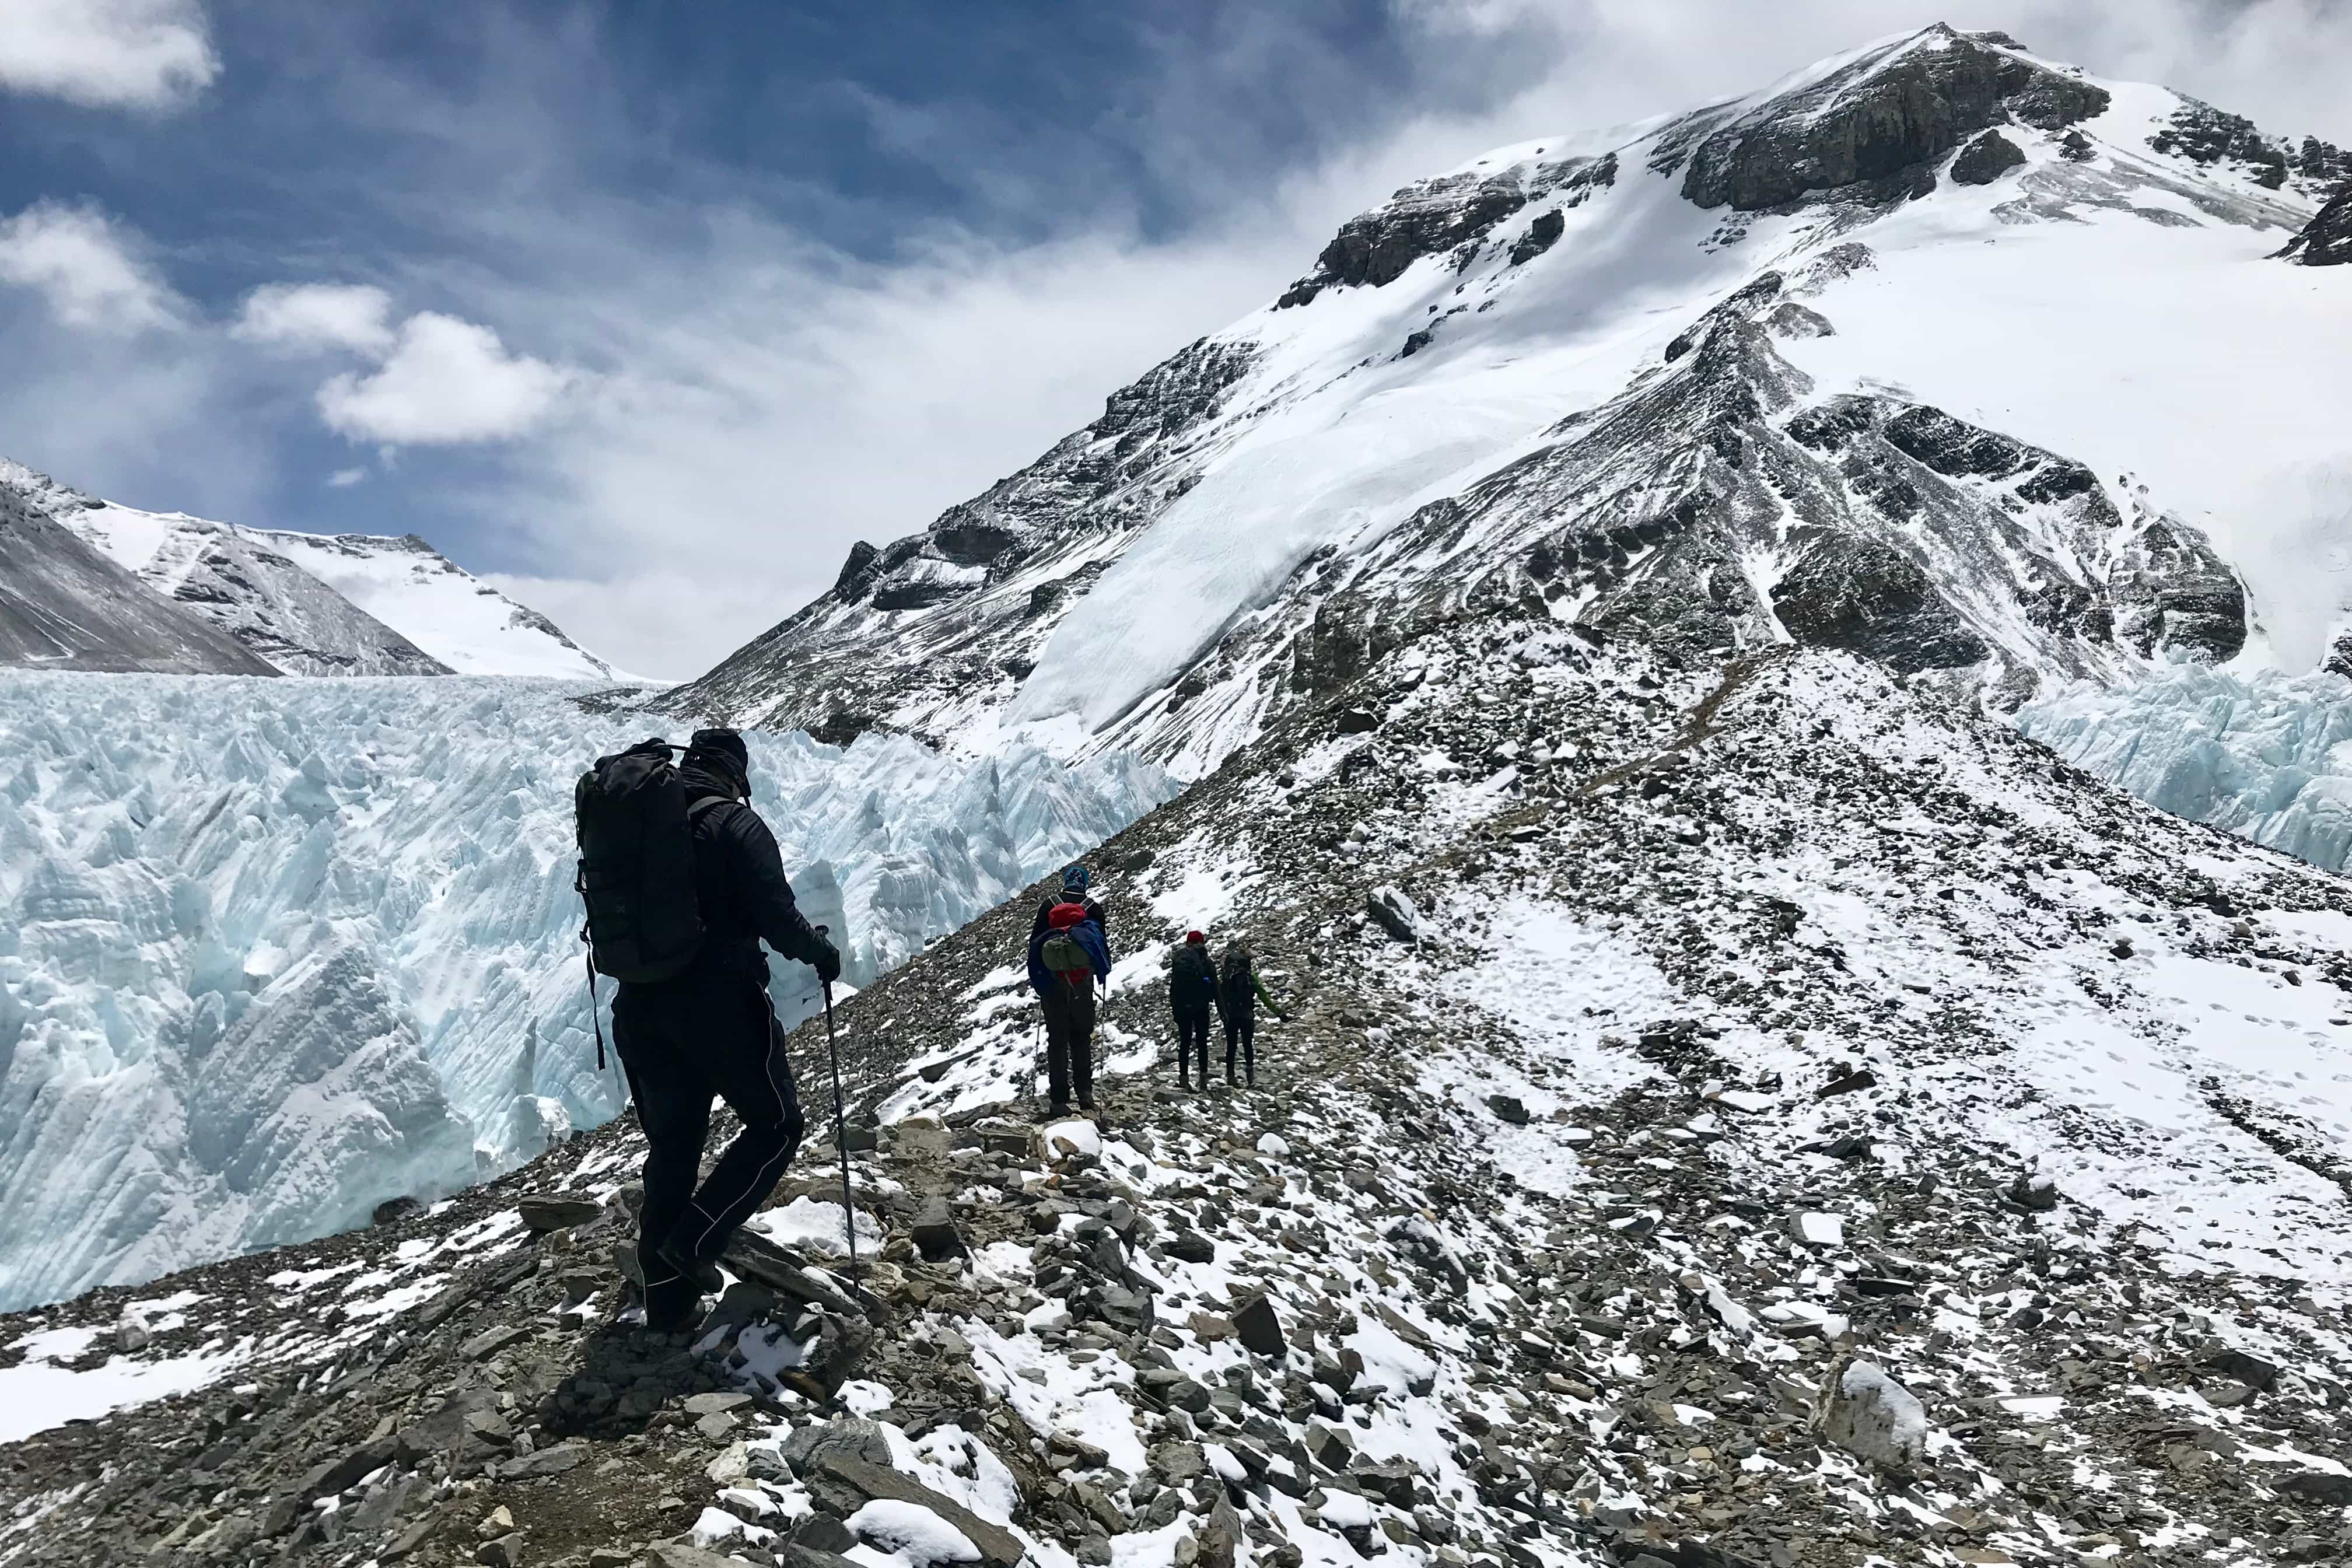 Northern ascent to Mount Everest in Tibet